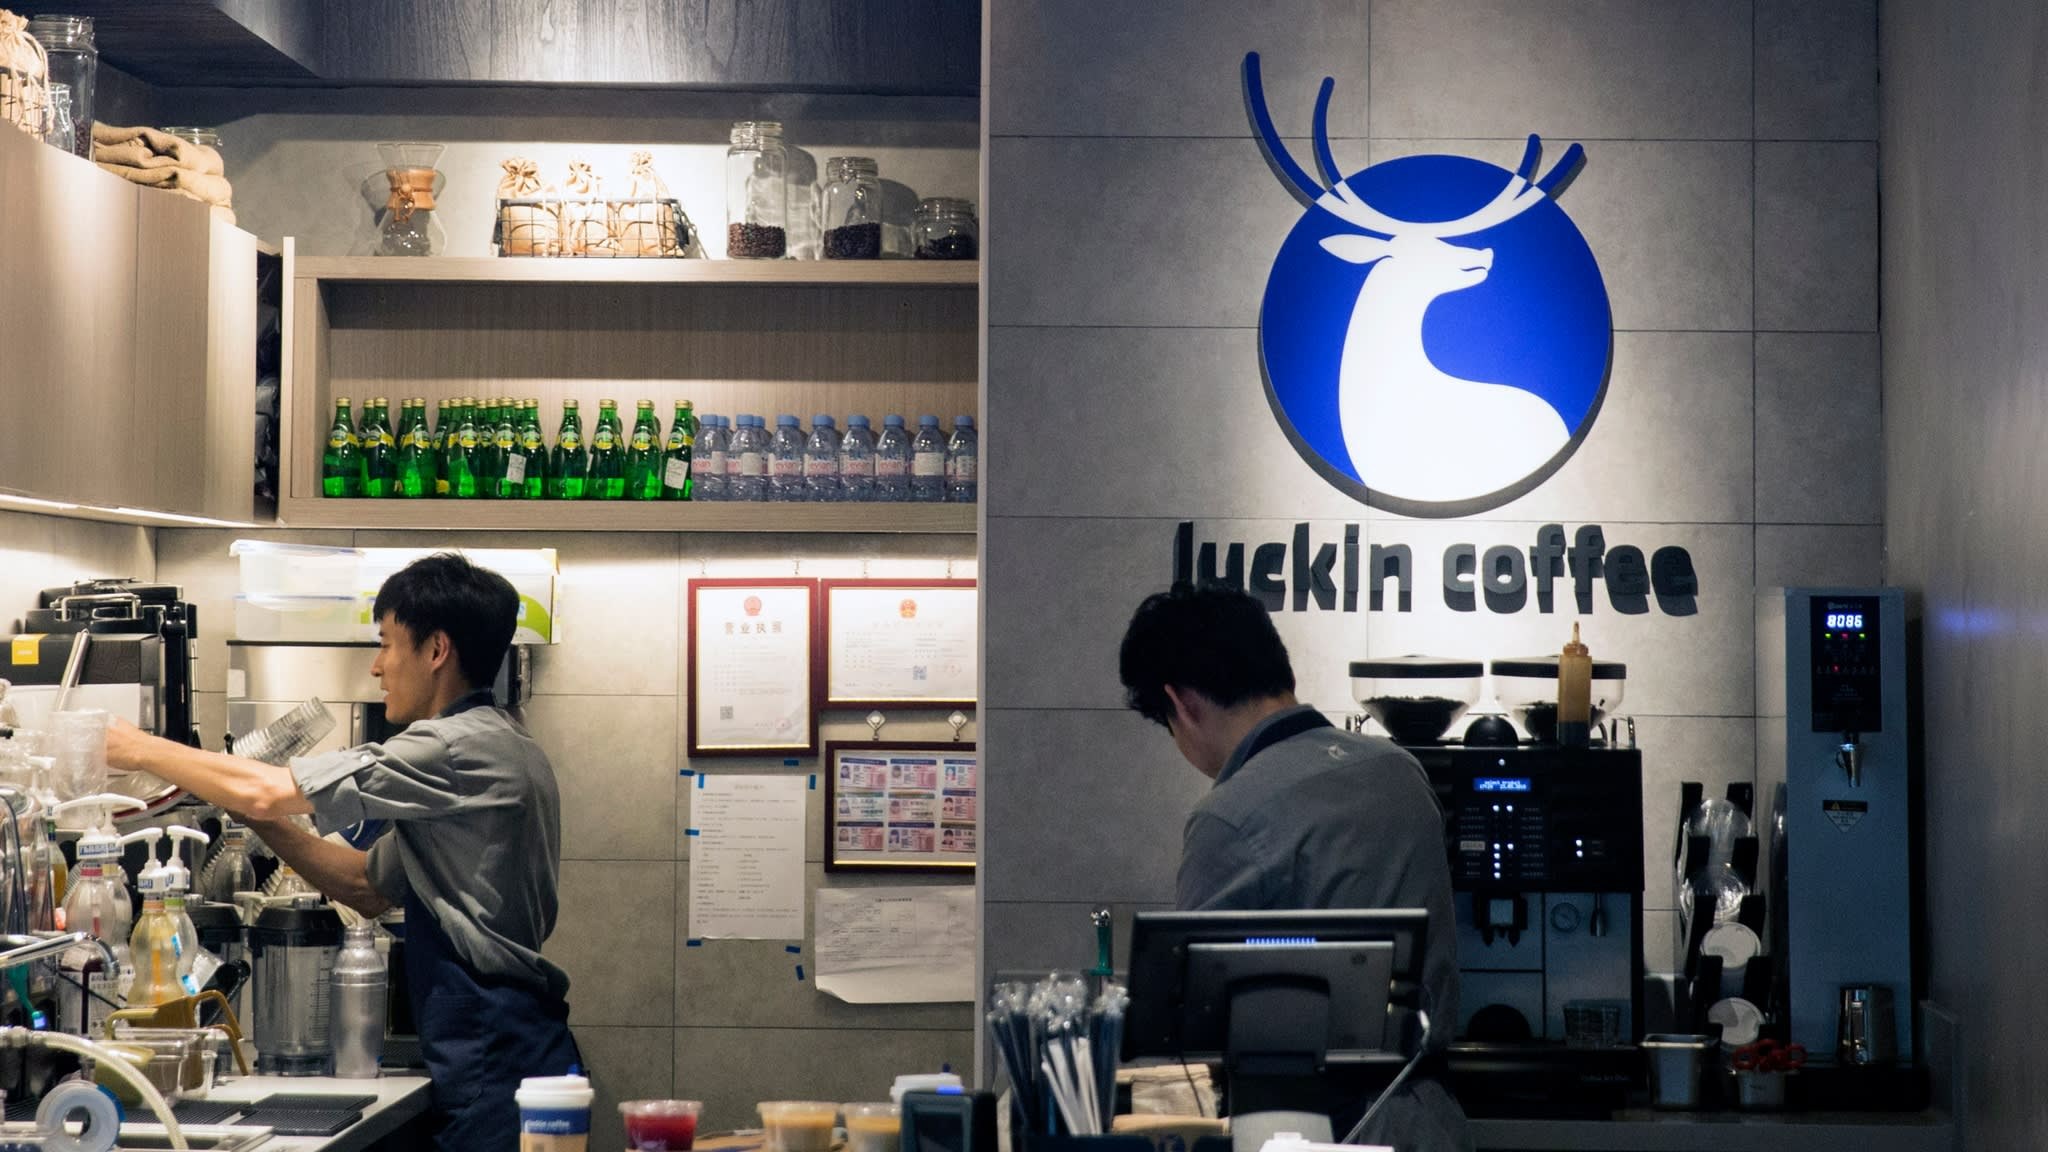 China's Luckin coffee raises $150m in push to overtake Starbucks | Financial Times